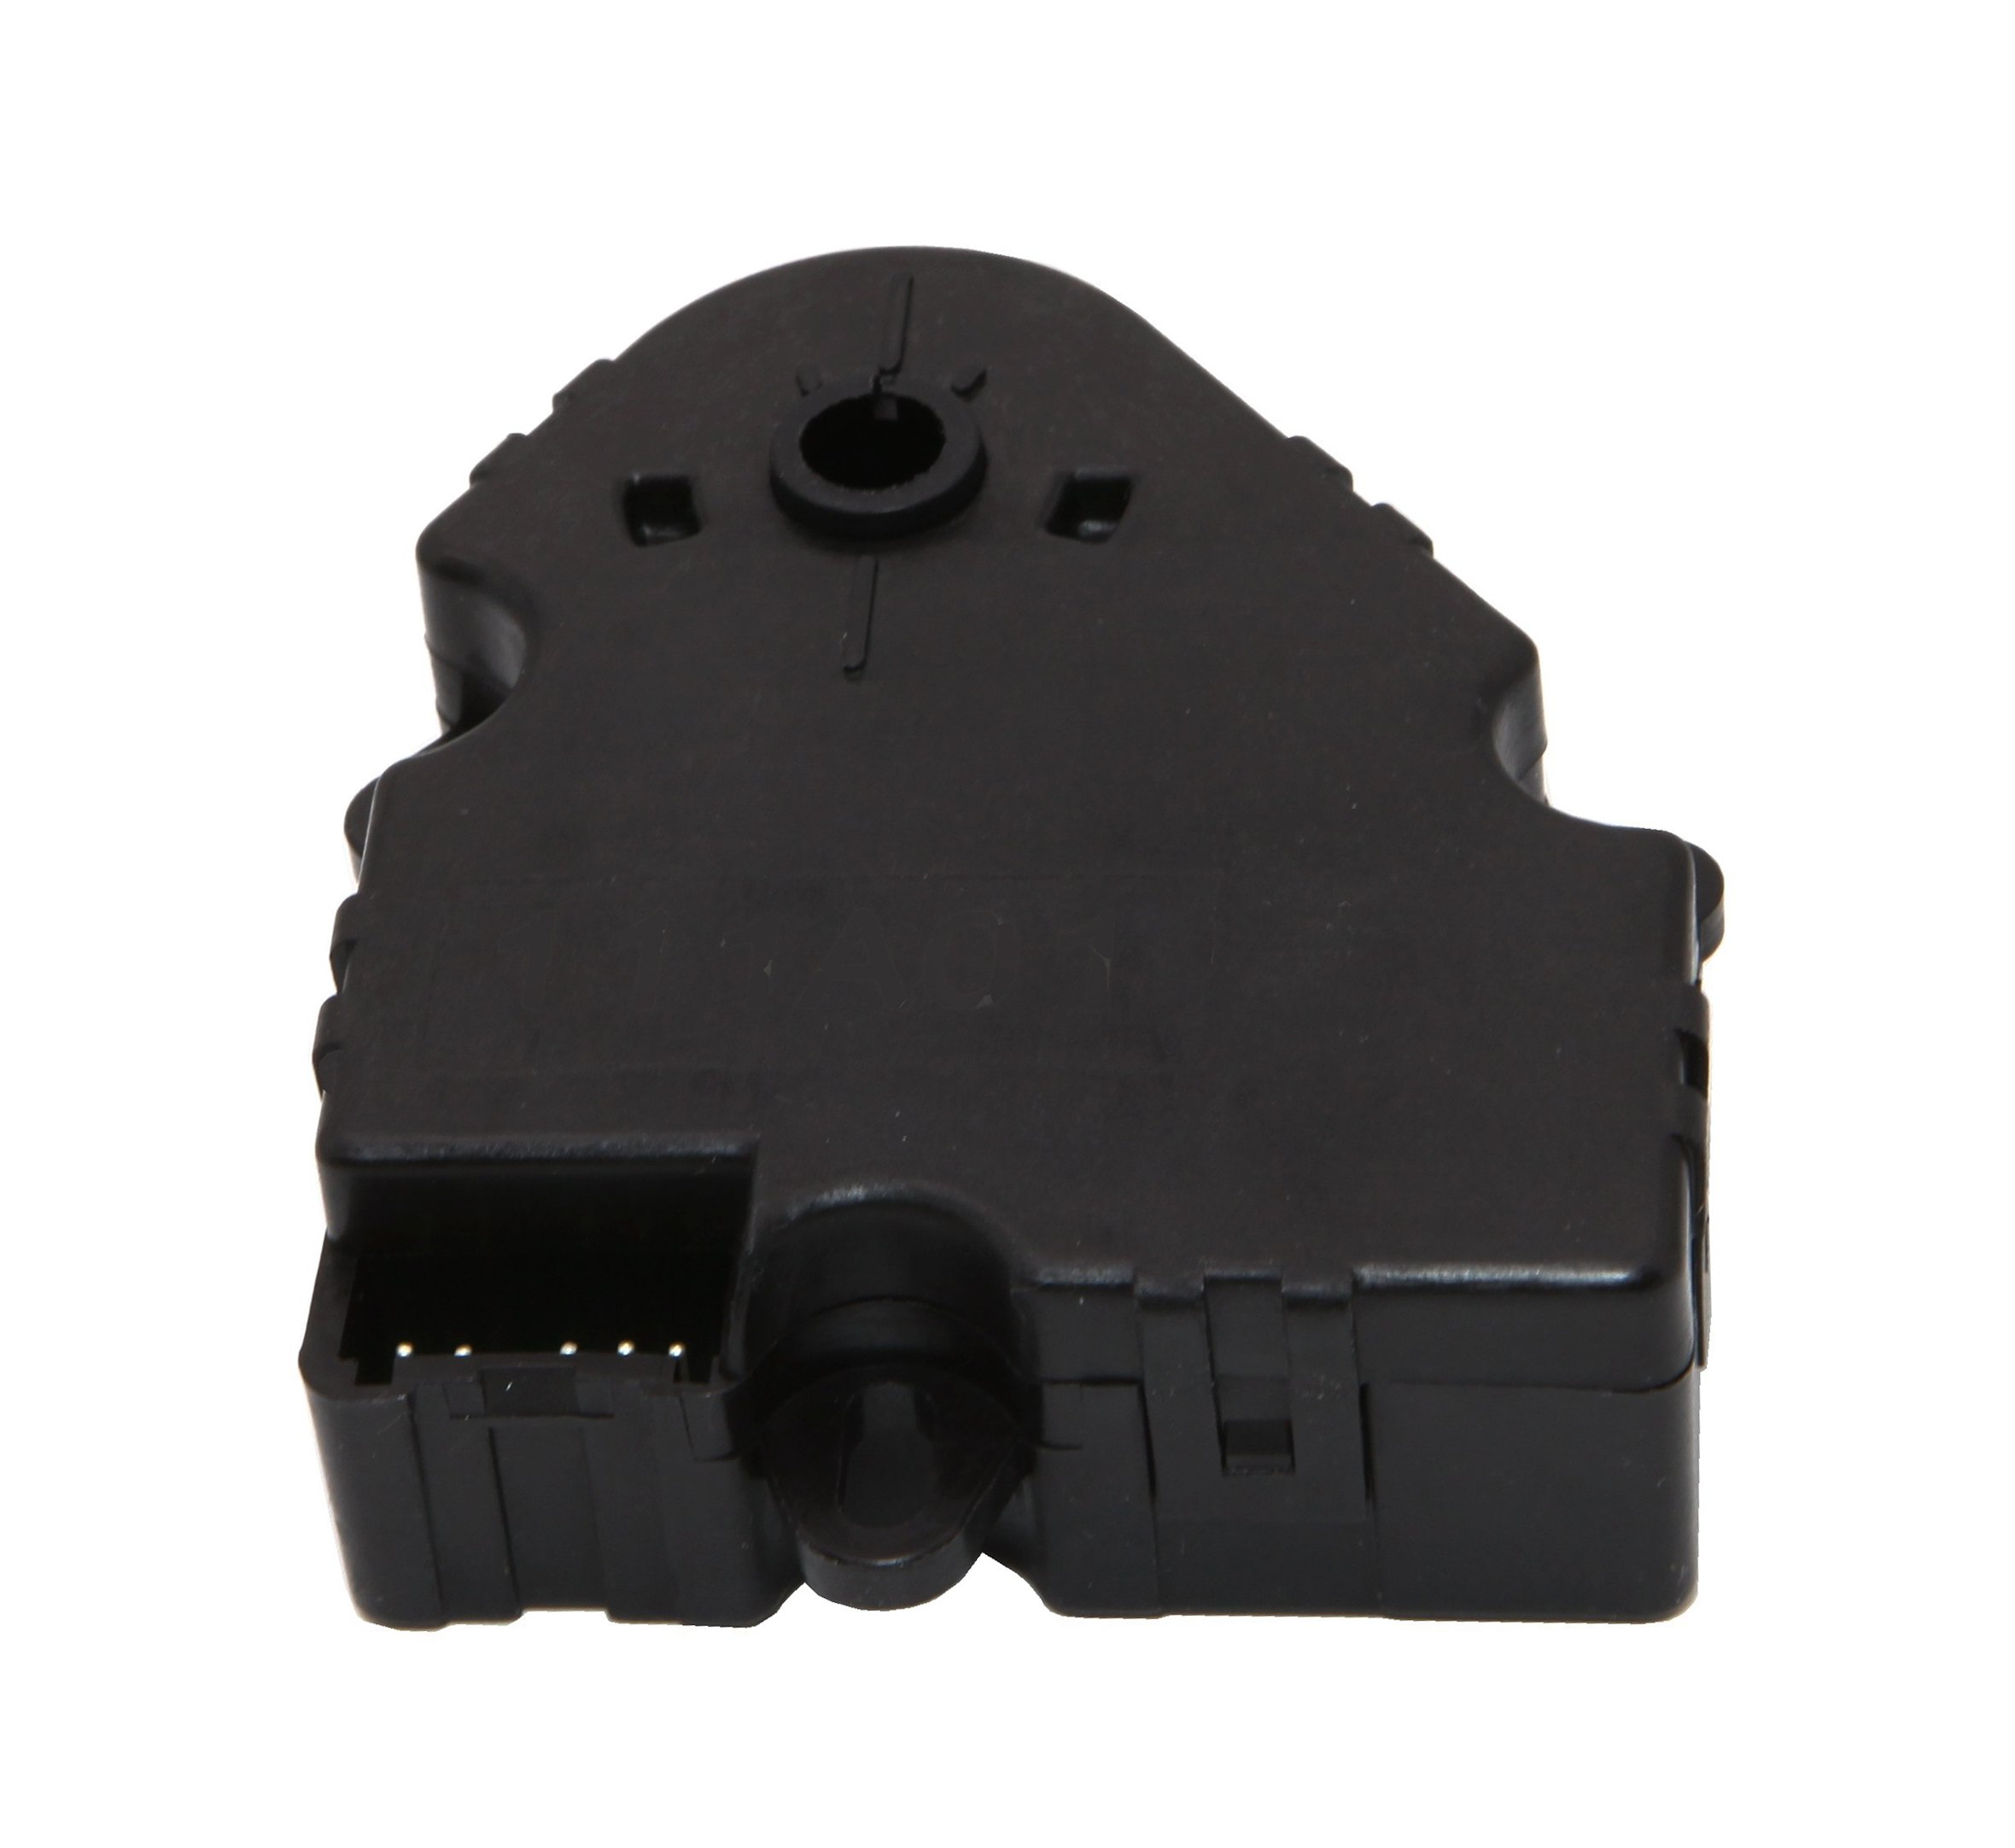 Air Door Actuator K140A for 2008-2012 Buick Enclave, 2009-2012 Chevy Traverse, 2007-2012 GMC Acadia, 2007-2010 Saturn Outlook Blend Door Actuator Replaces# 15-73989, 604-140, 20826182, 1573989